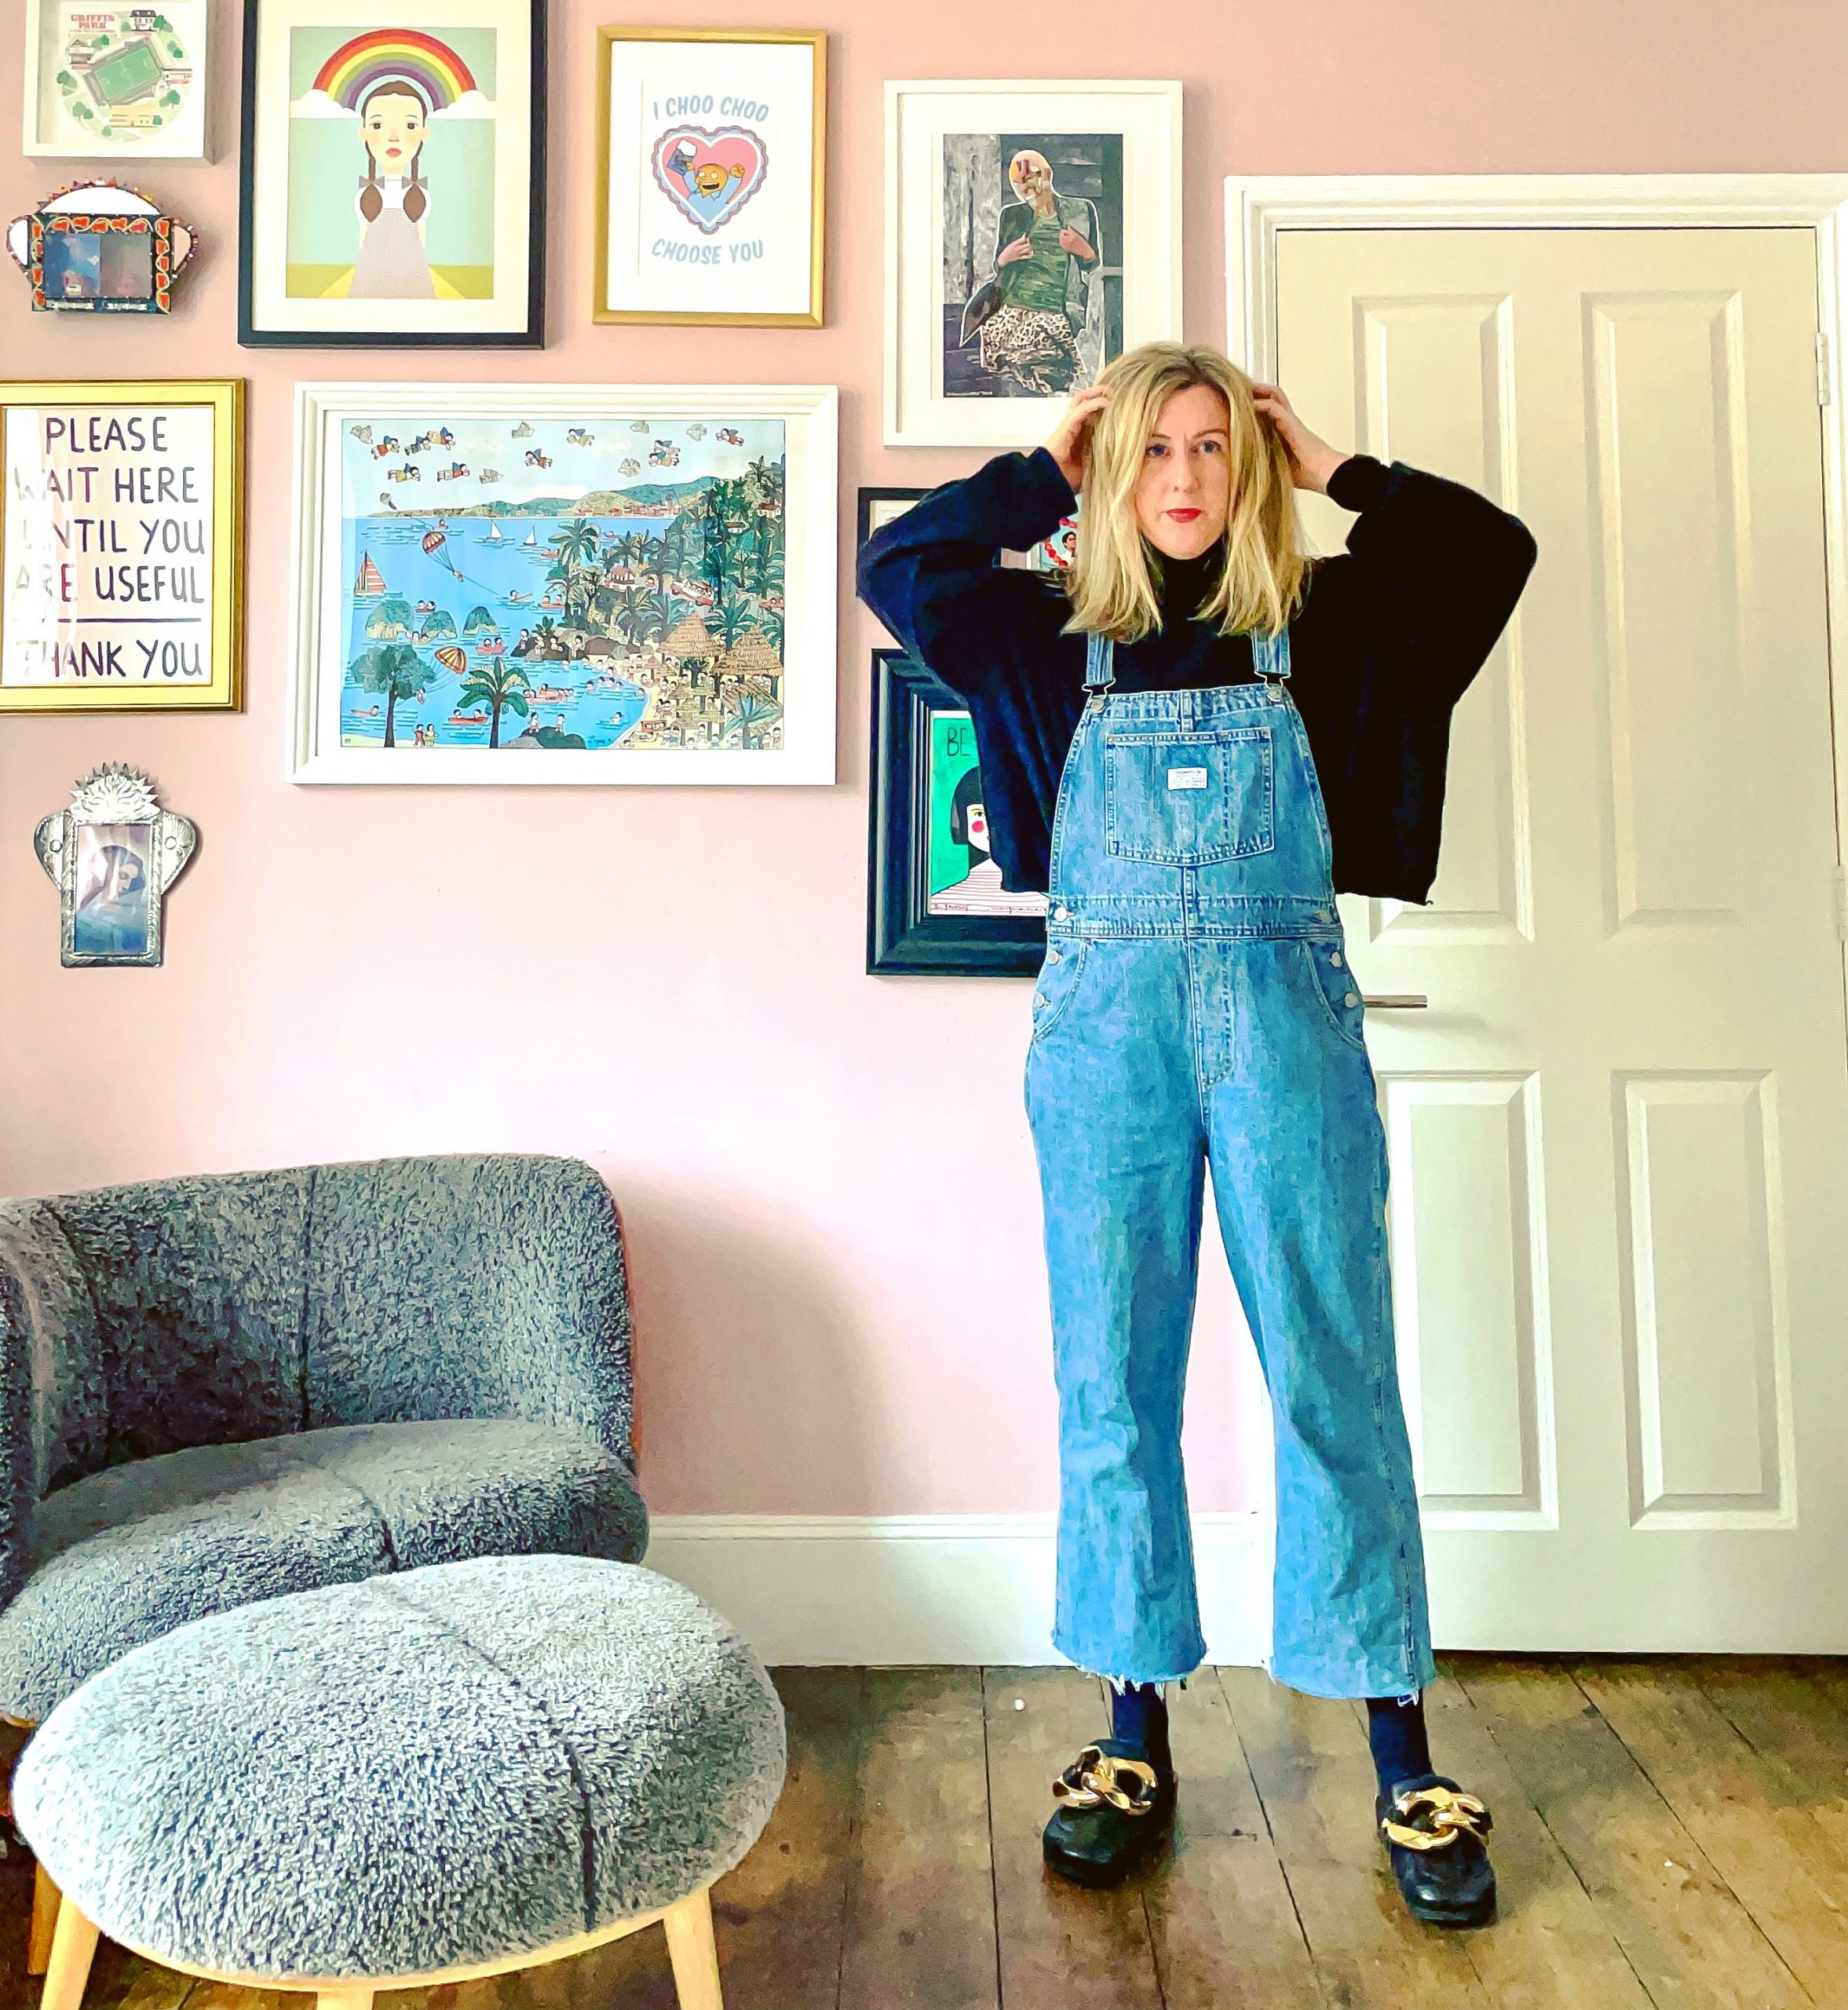 Dungarees AND stupid shoes! Whatever next?